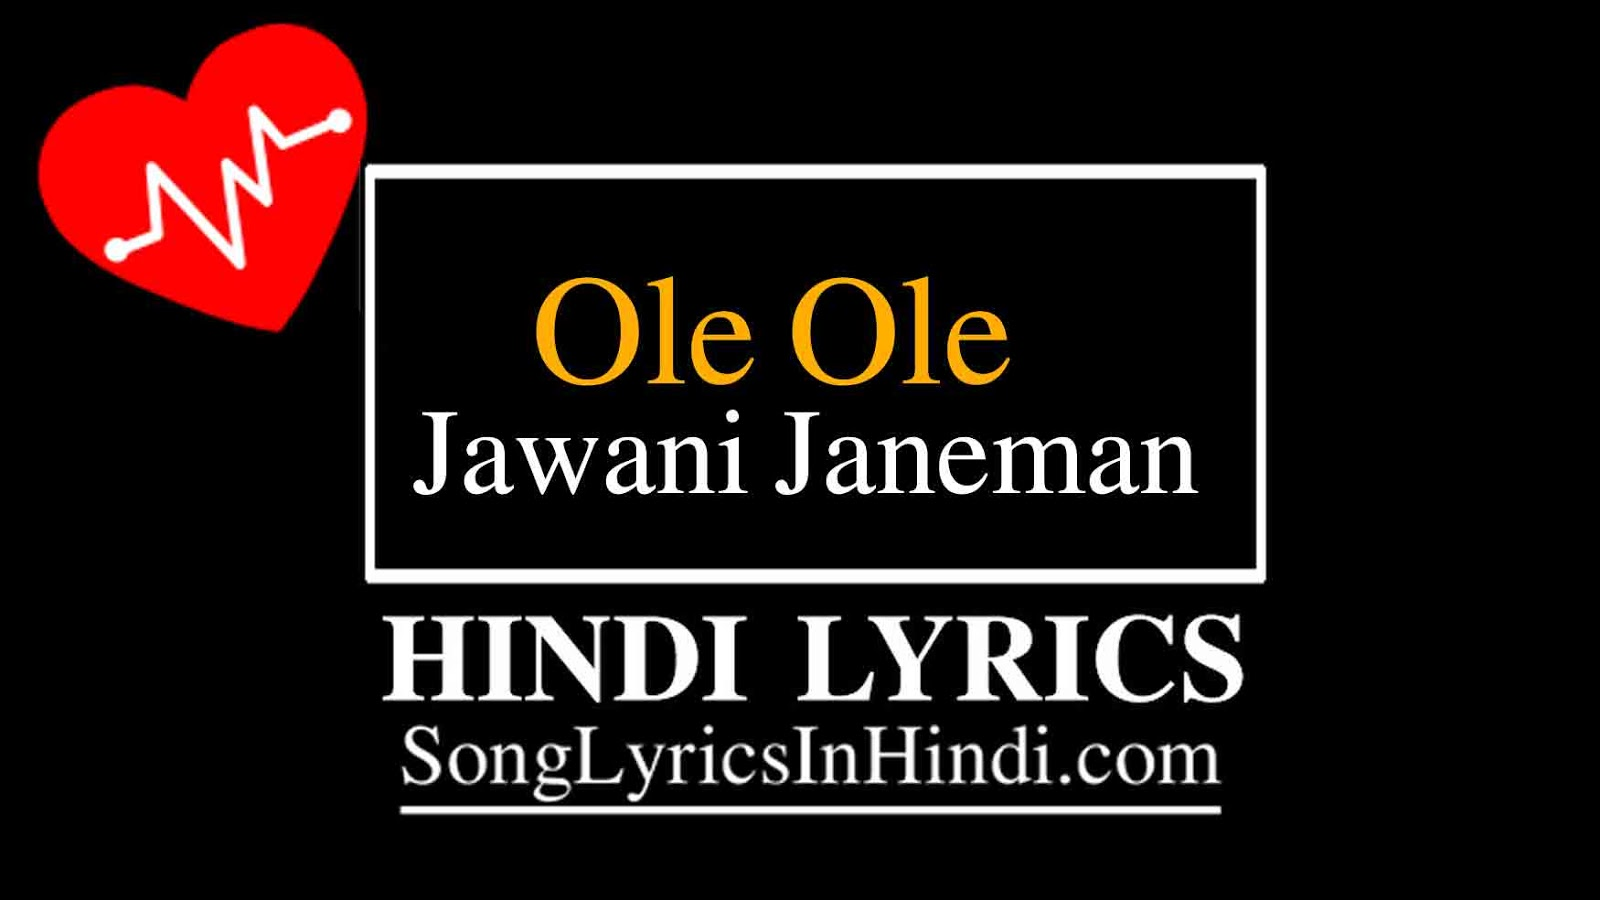 Ole Ole Jawani Janeman Lyrics